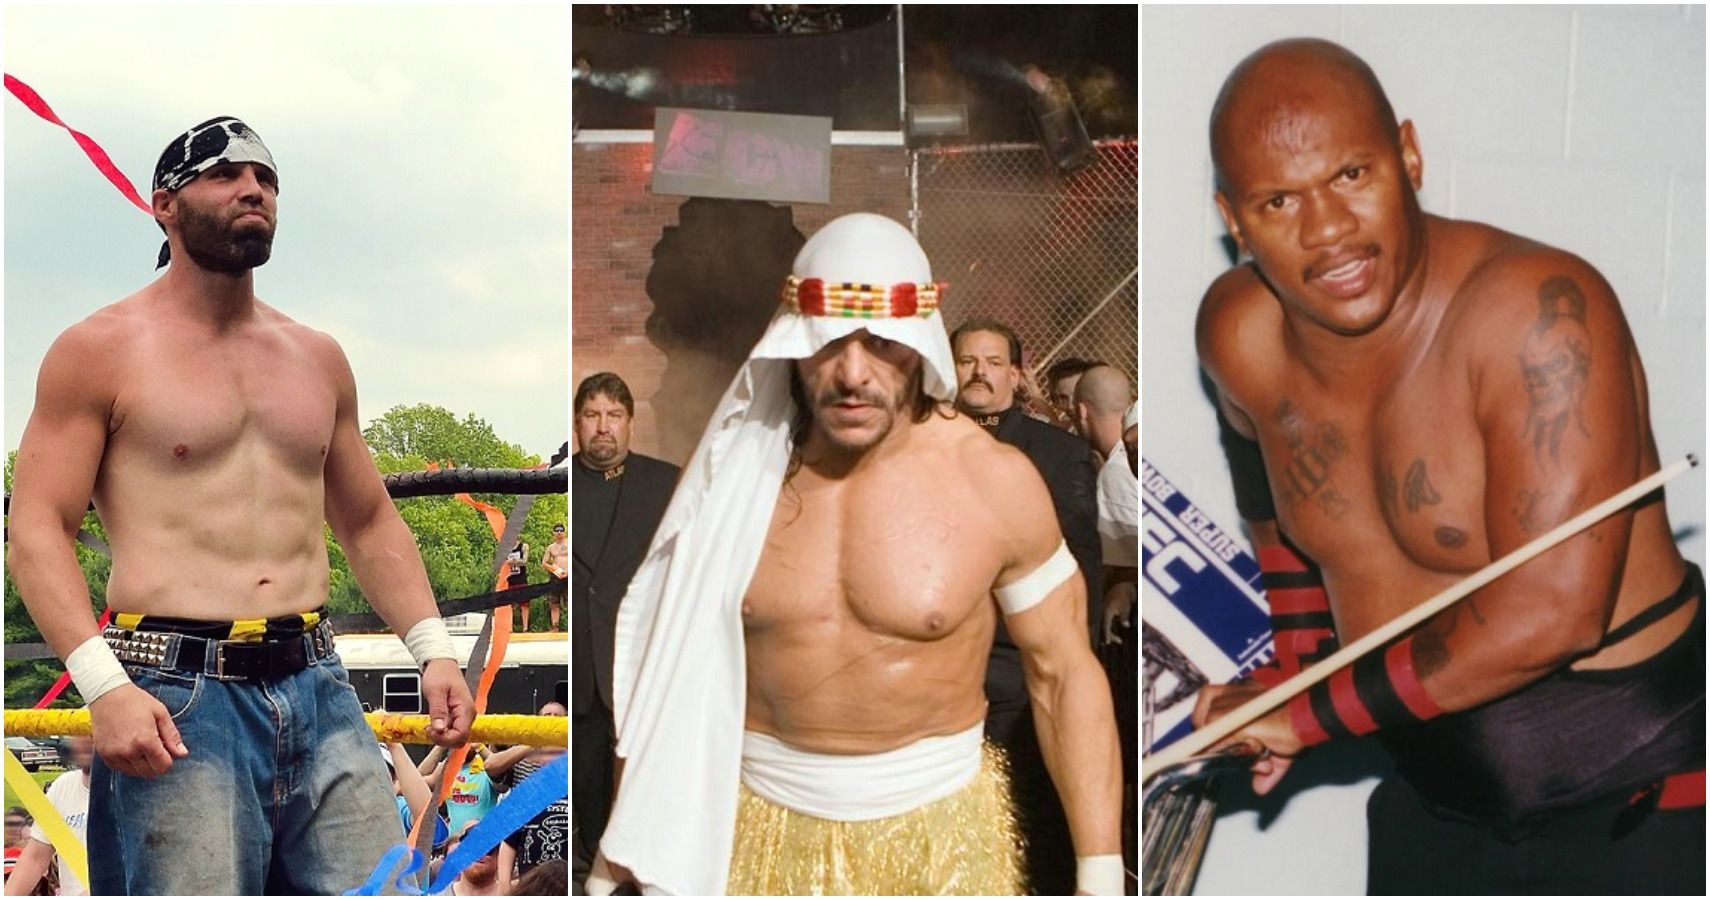 10 Wrestlers With The Best Claim To Be On The Mount Rushmore Of Hardcore Wrestling